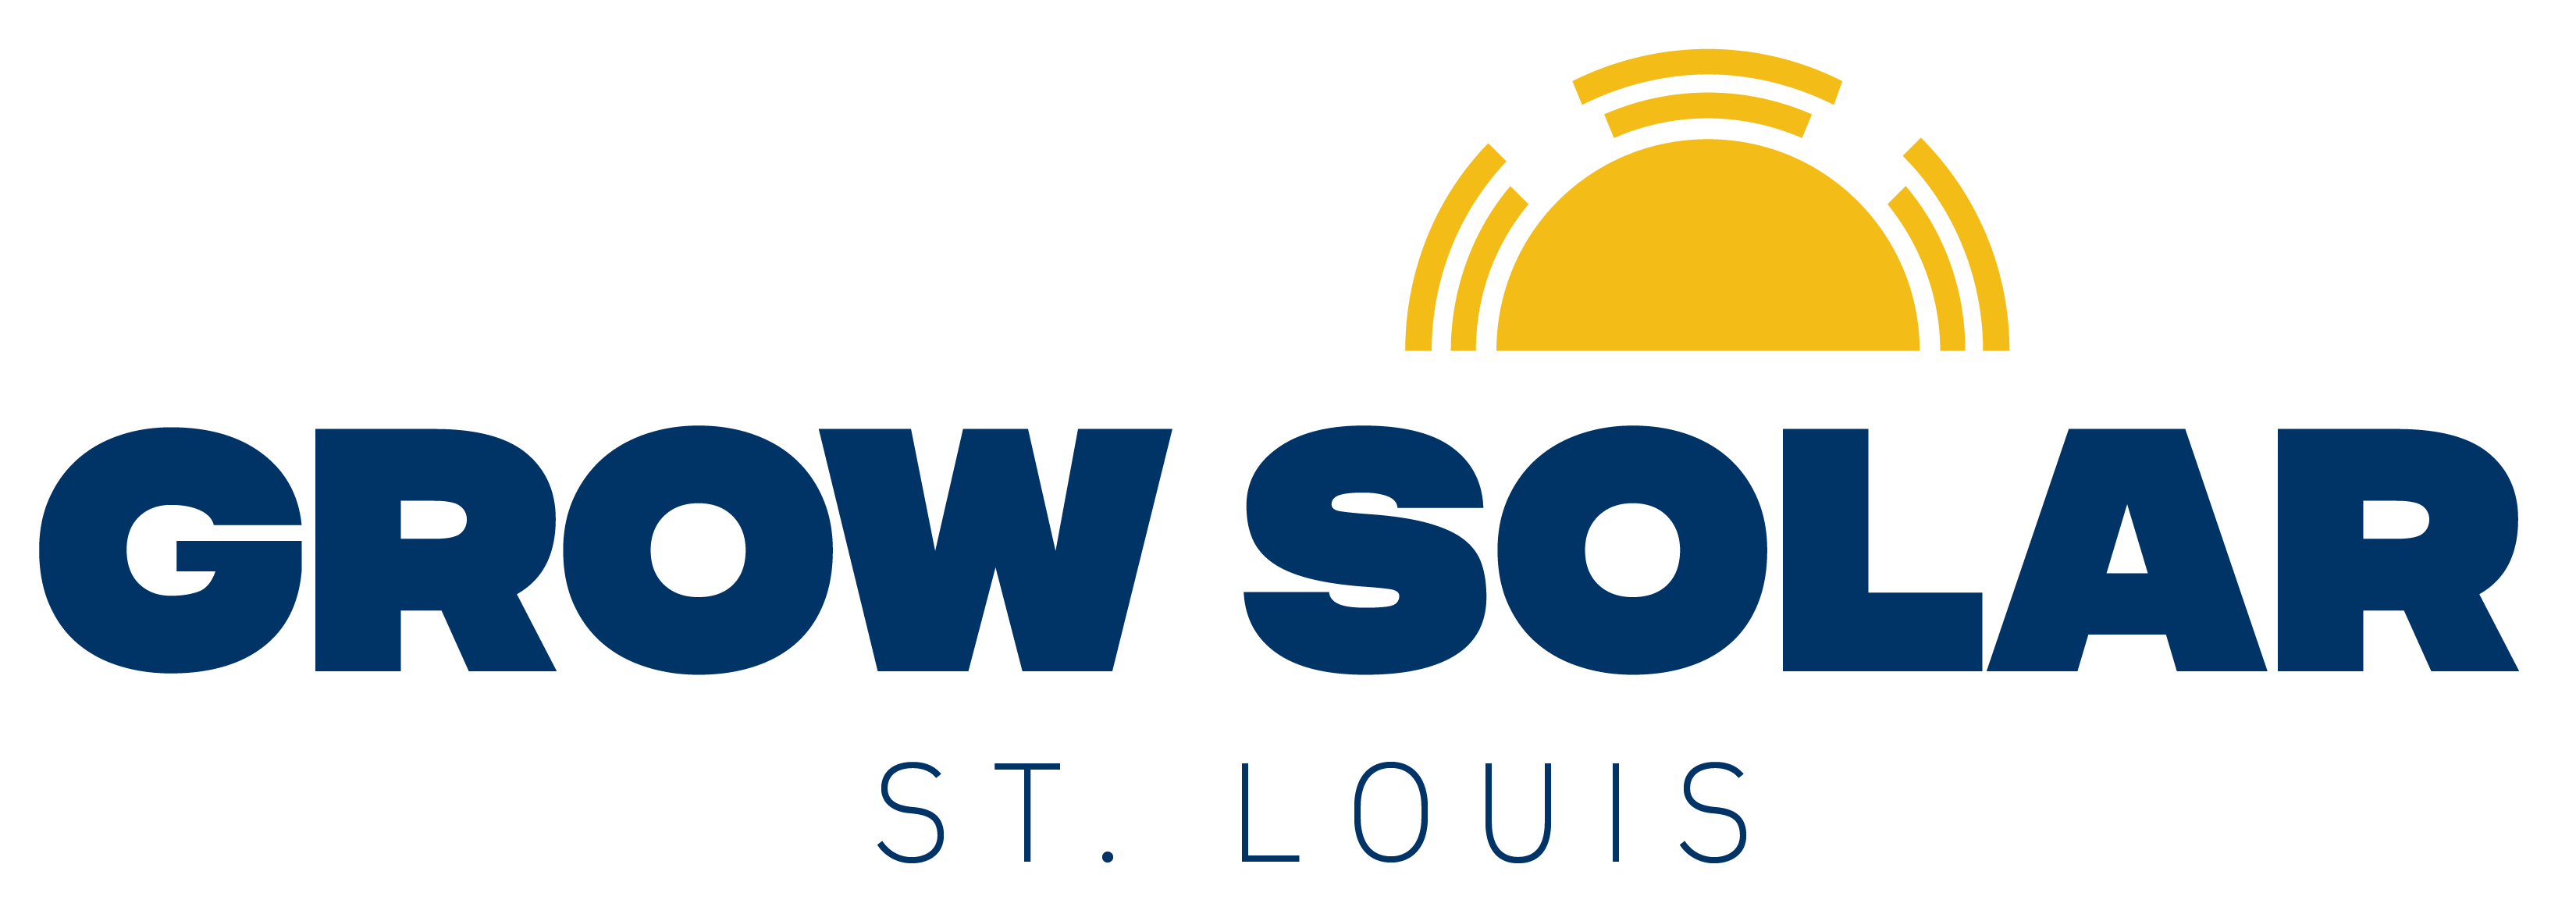 Thinking About Going Solar? Check Out Grow Solar St. Louis!